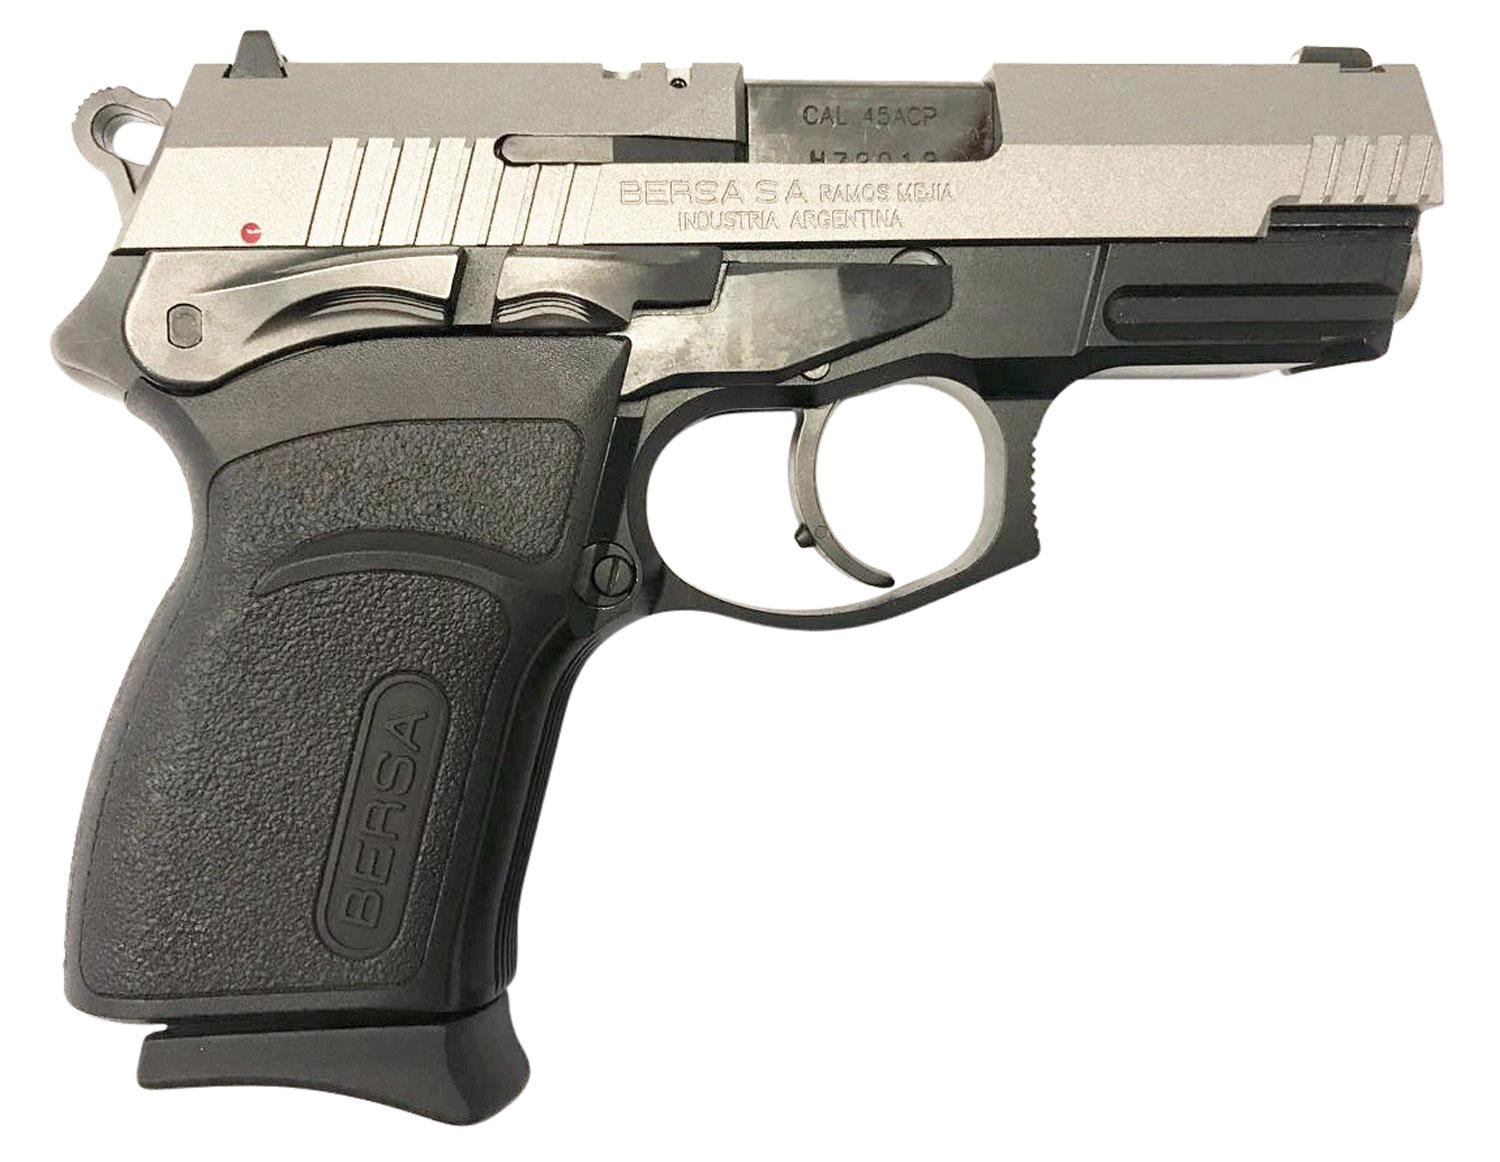 Bersa Tpr45cdt Thunder Pro Compact Single/Double 45 Automatic Colt Pistol (Acp) 3.6